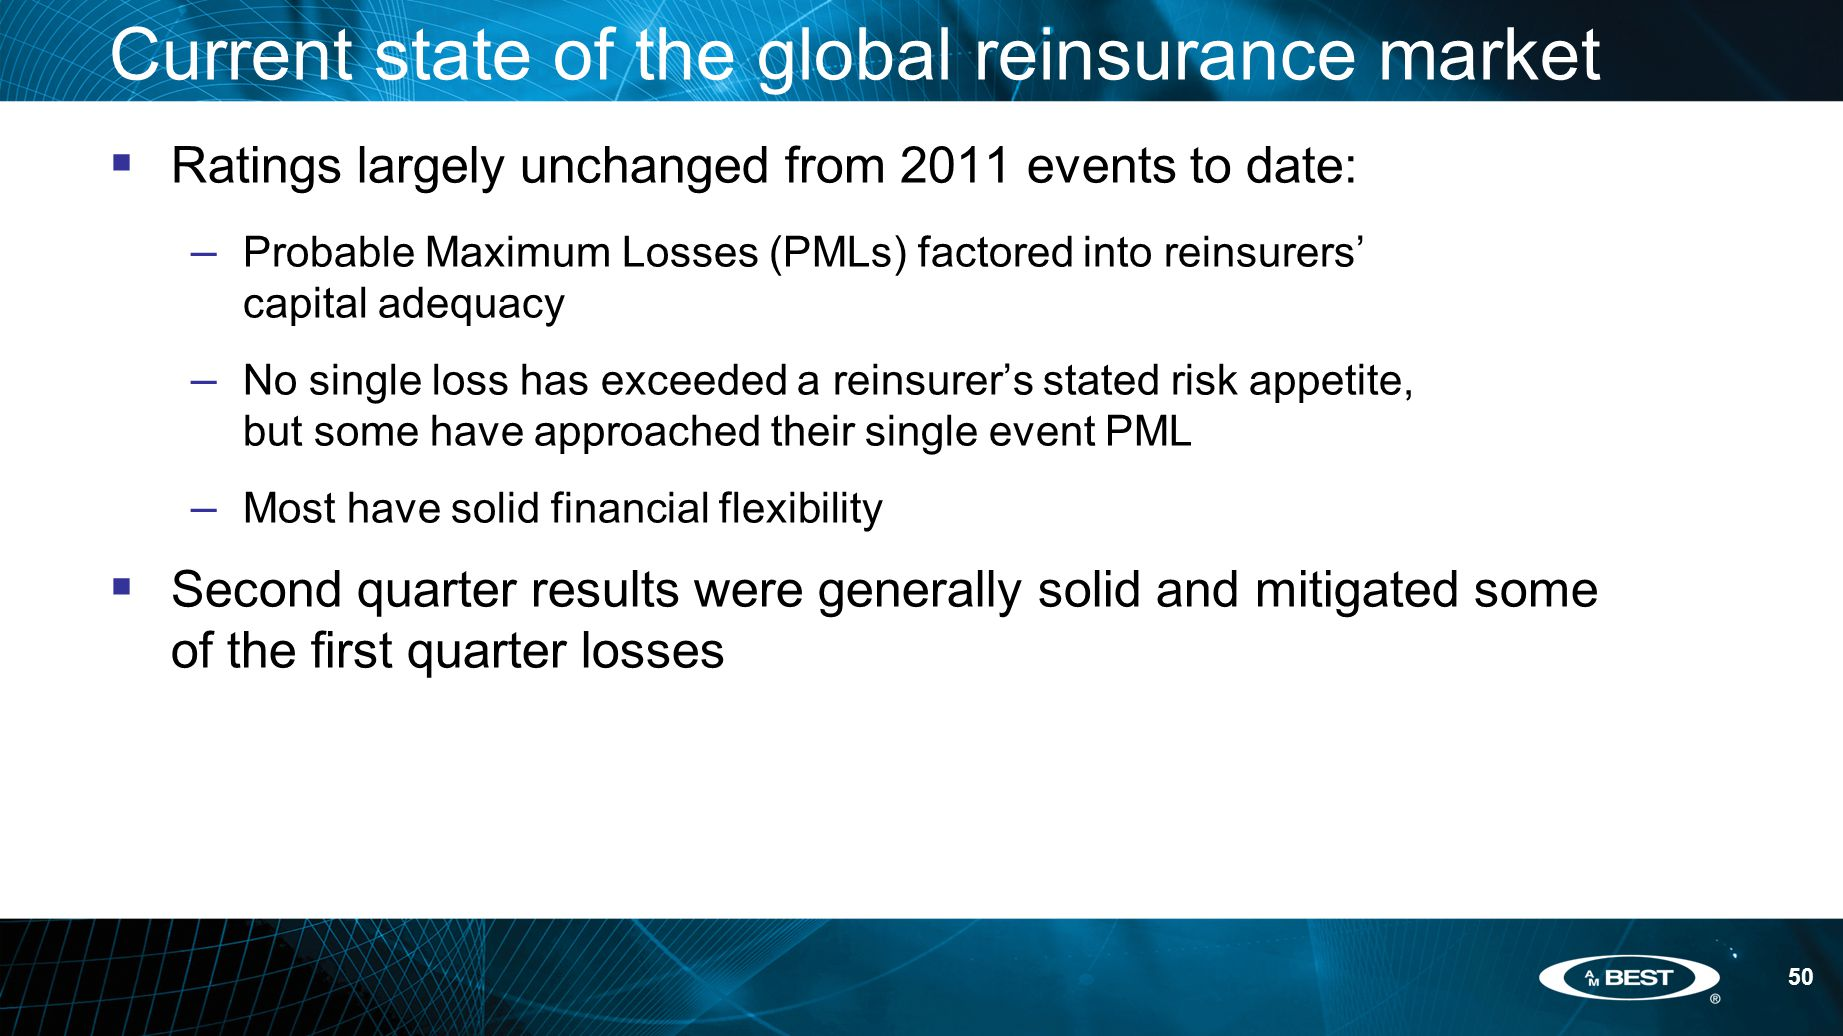 50 Current state of the global reinsurance market  Ratings largely unchanged from 2011 events to date: – Probable Maximum Losses (PMLs) factored into reinsurers' capital adequacy – No single loss has exceeded a reinsurer's stated risk appetite, but some have approached their single event PML – Most have solid financial flexibility  Second quarter results were generally solid and mitigated some of the first quarter losses